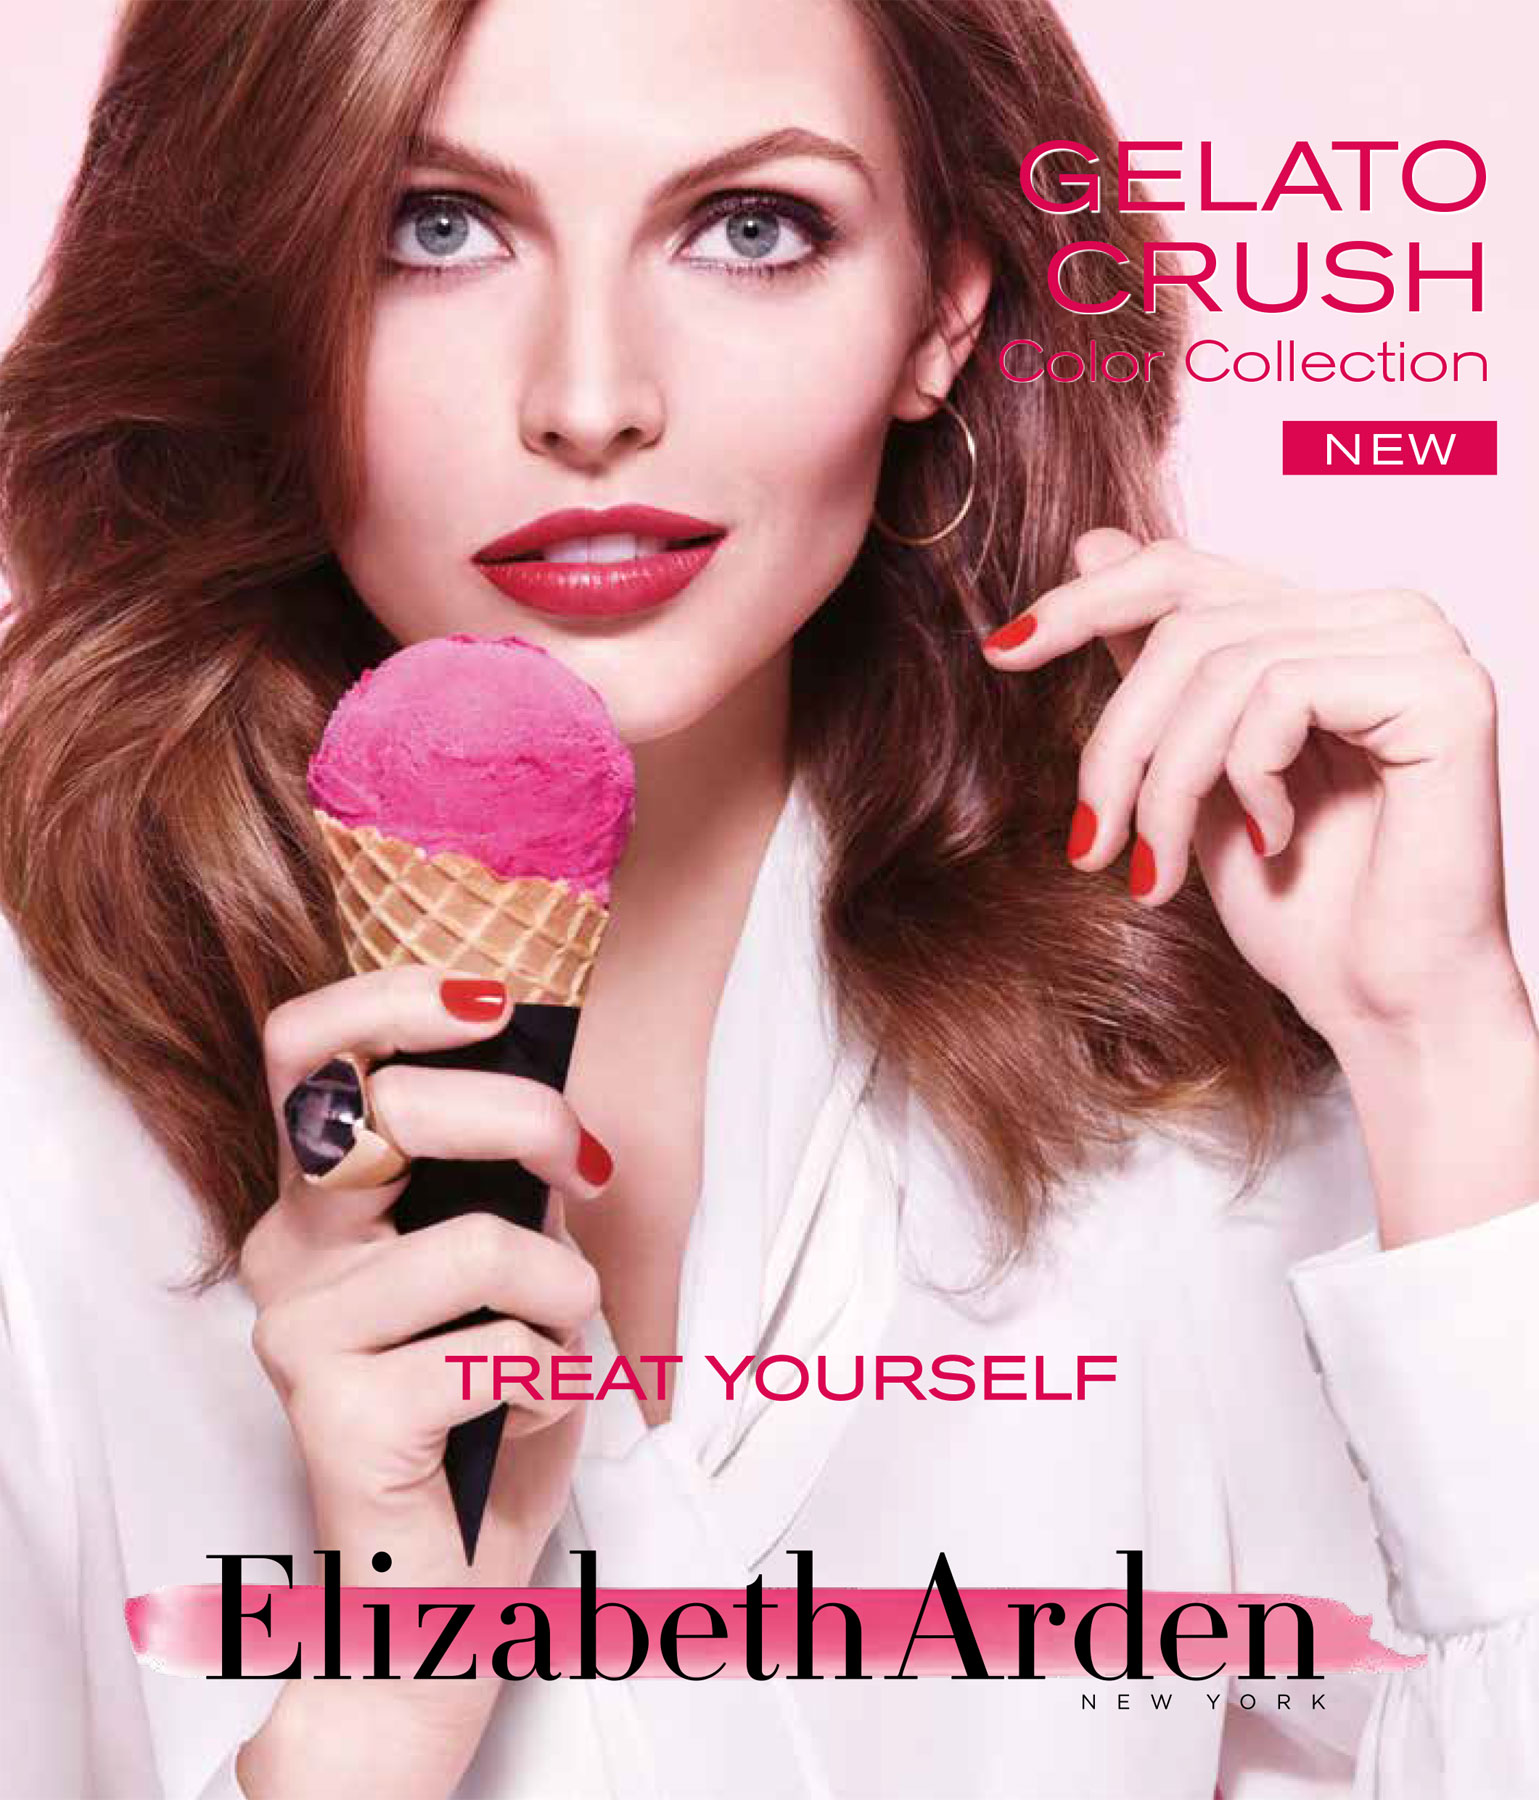 Elizabeth Arden Gelato Crush Colour Collection News Beautyalmanac